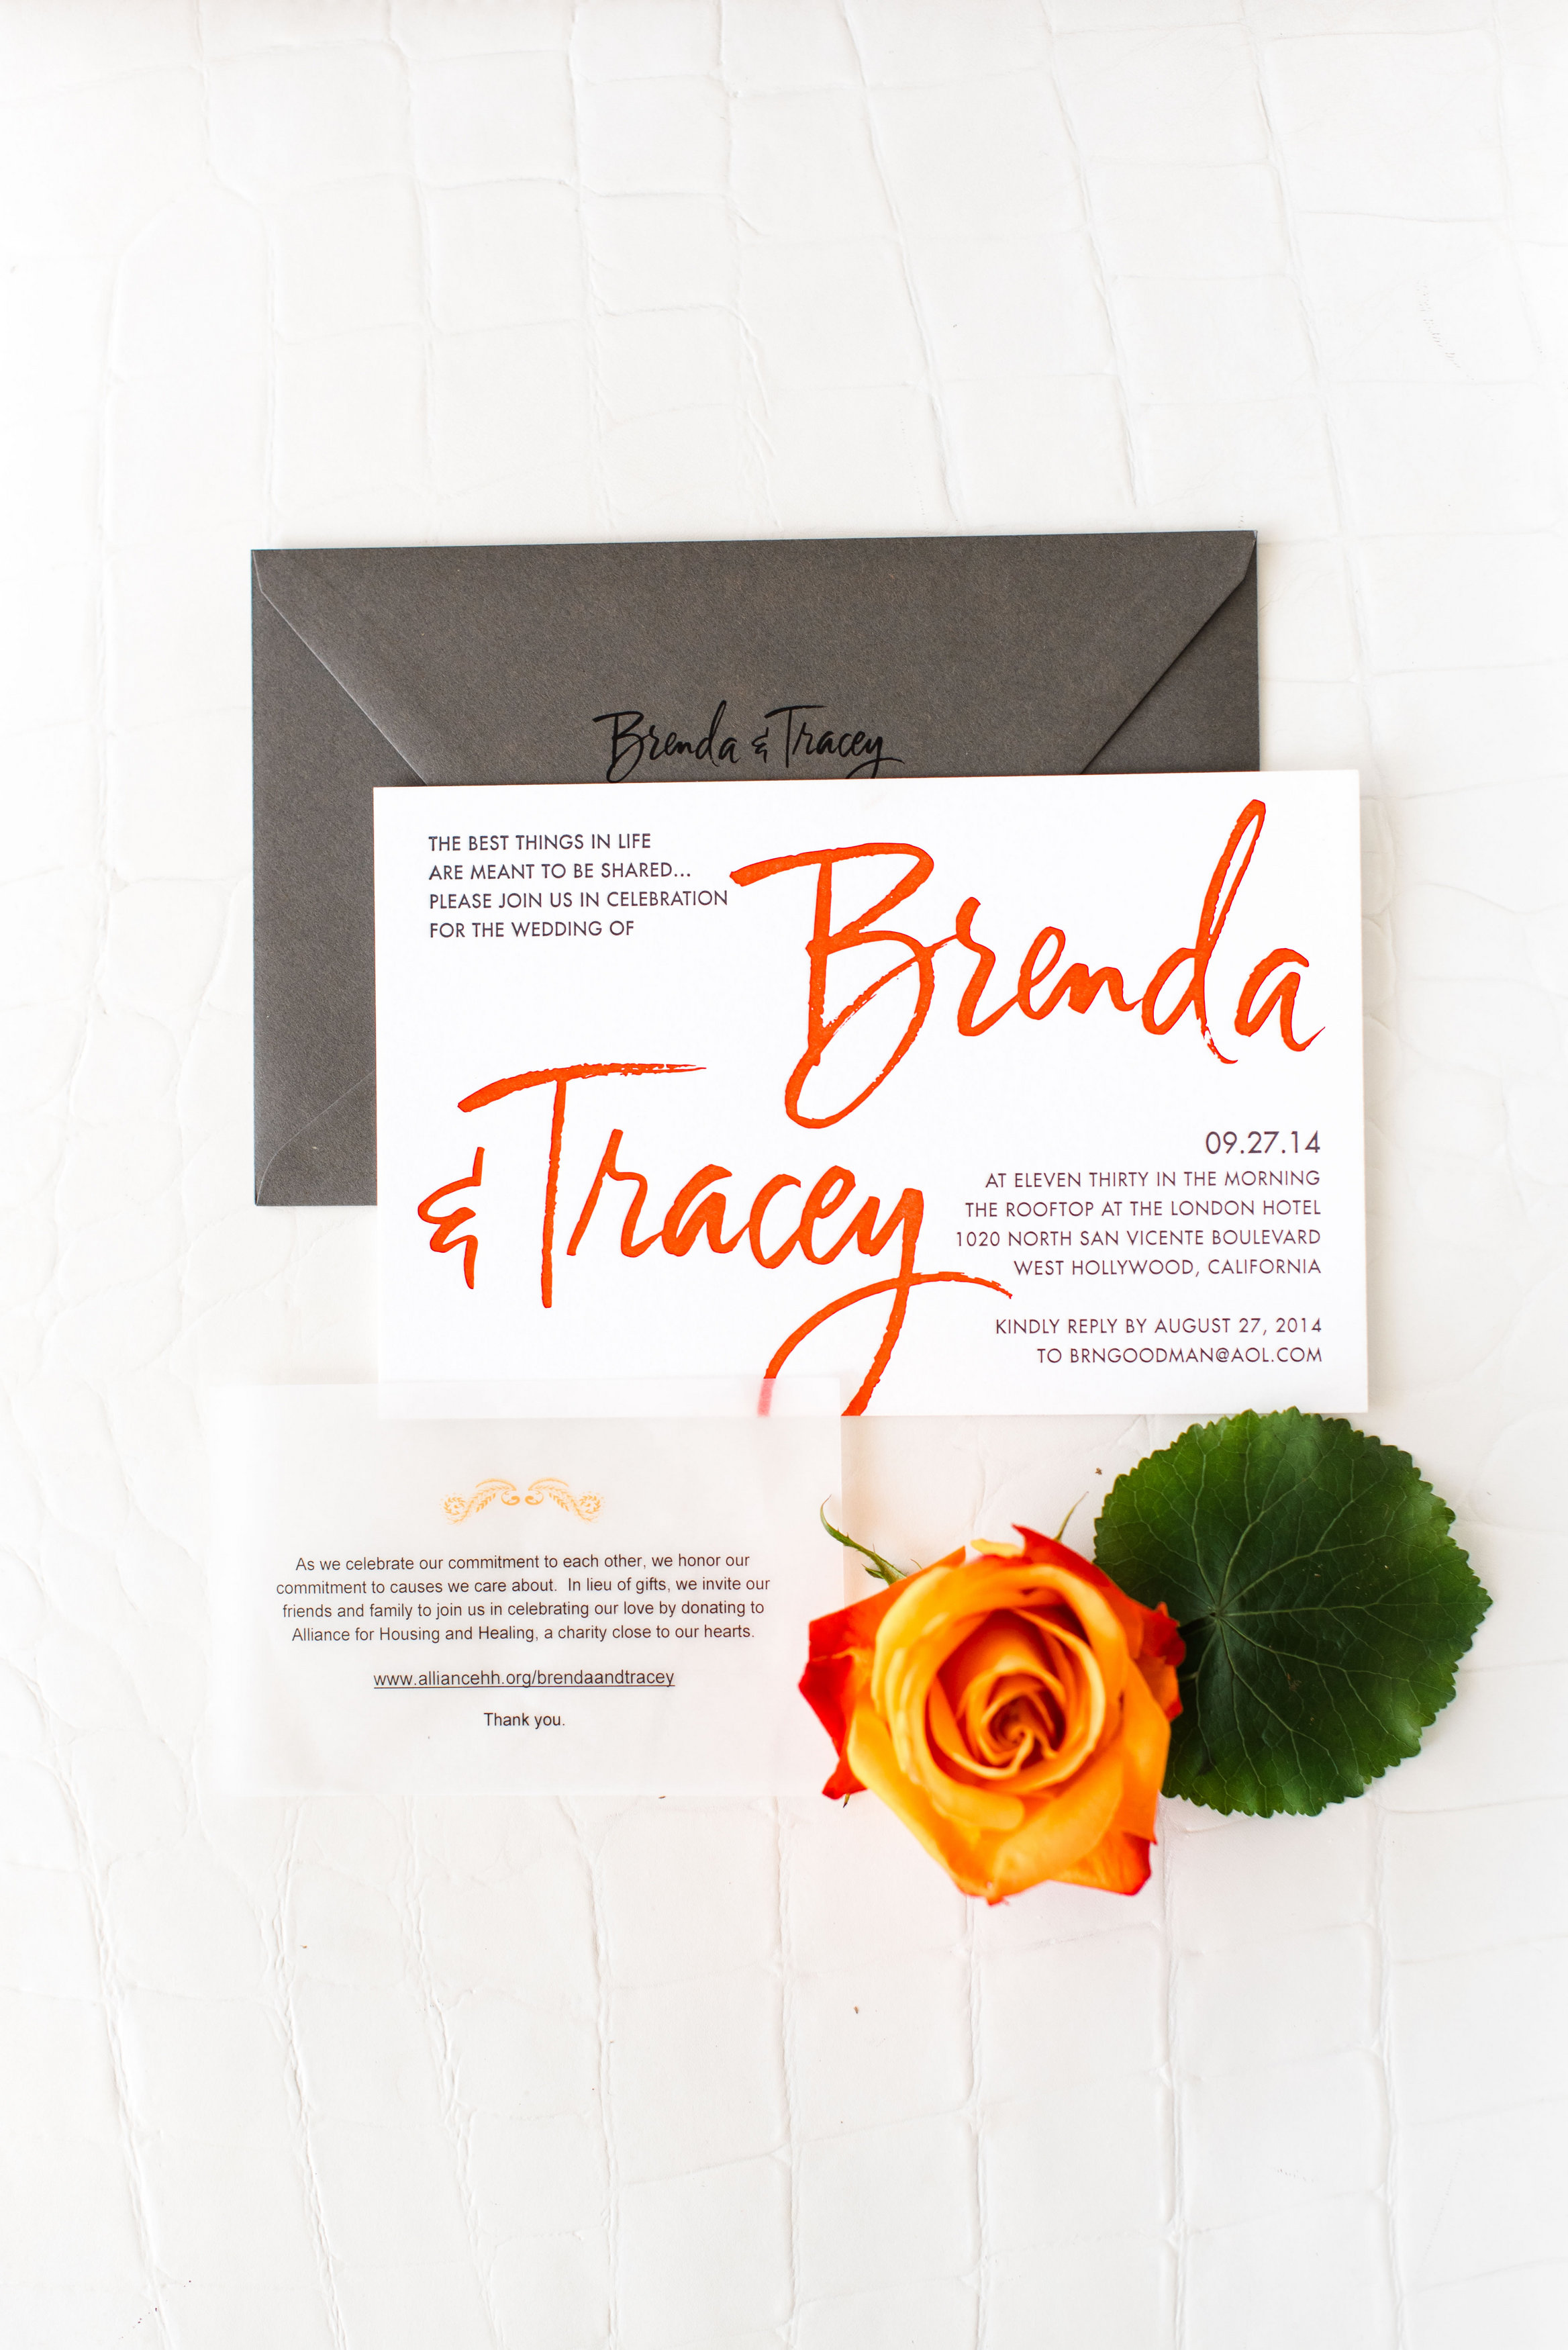 View More: http://sanazphotography.pass.us/brenda-tracey-wed